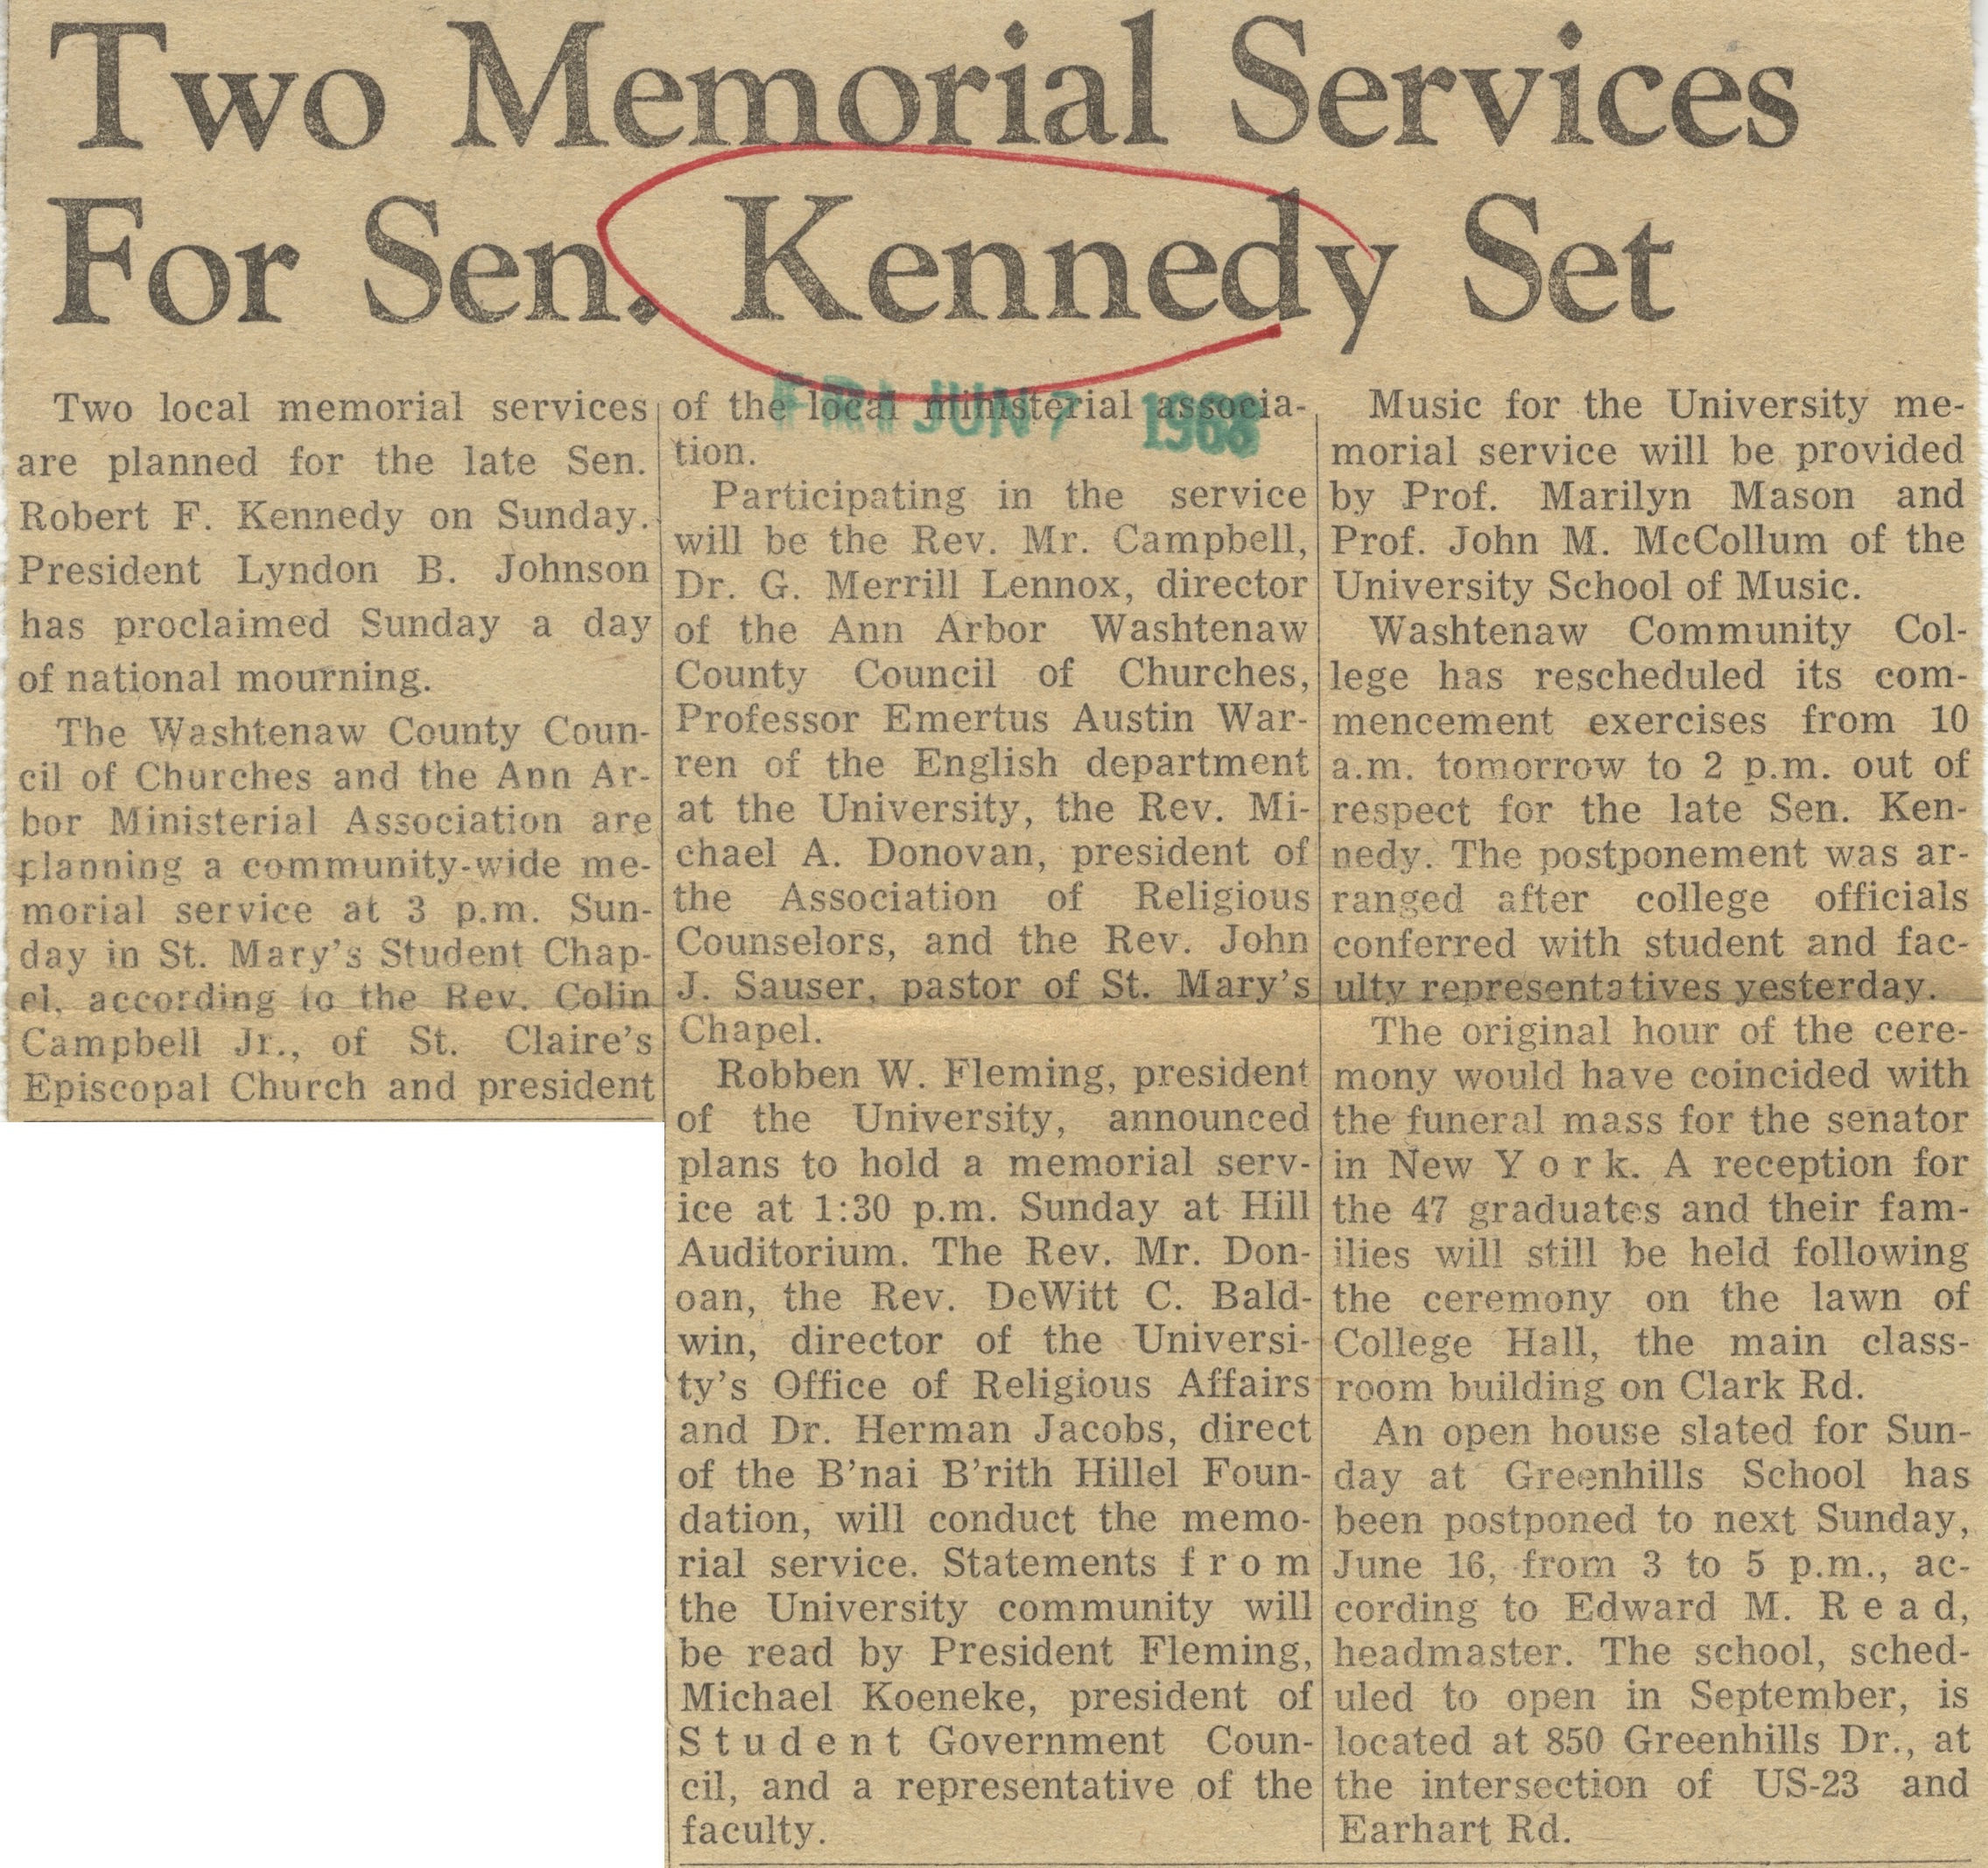 Two Memorial Services For Sen. Kennedy Set image